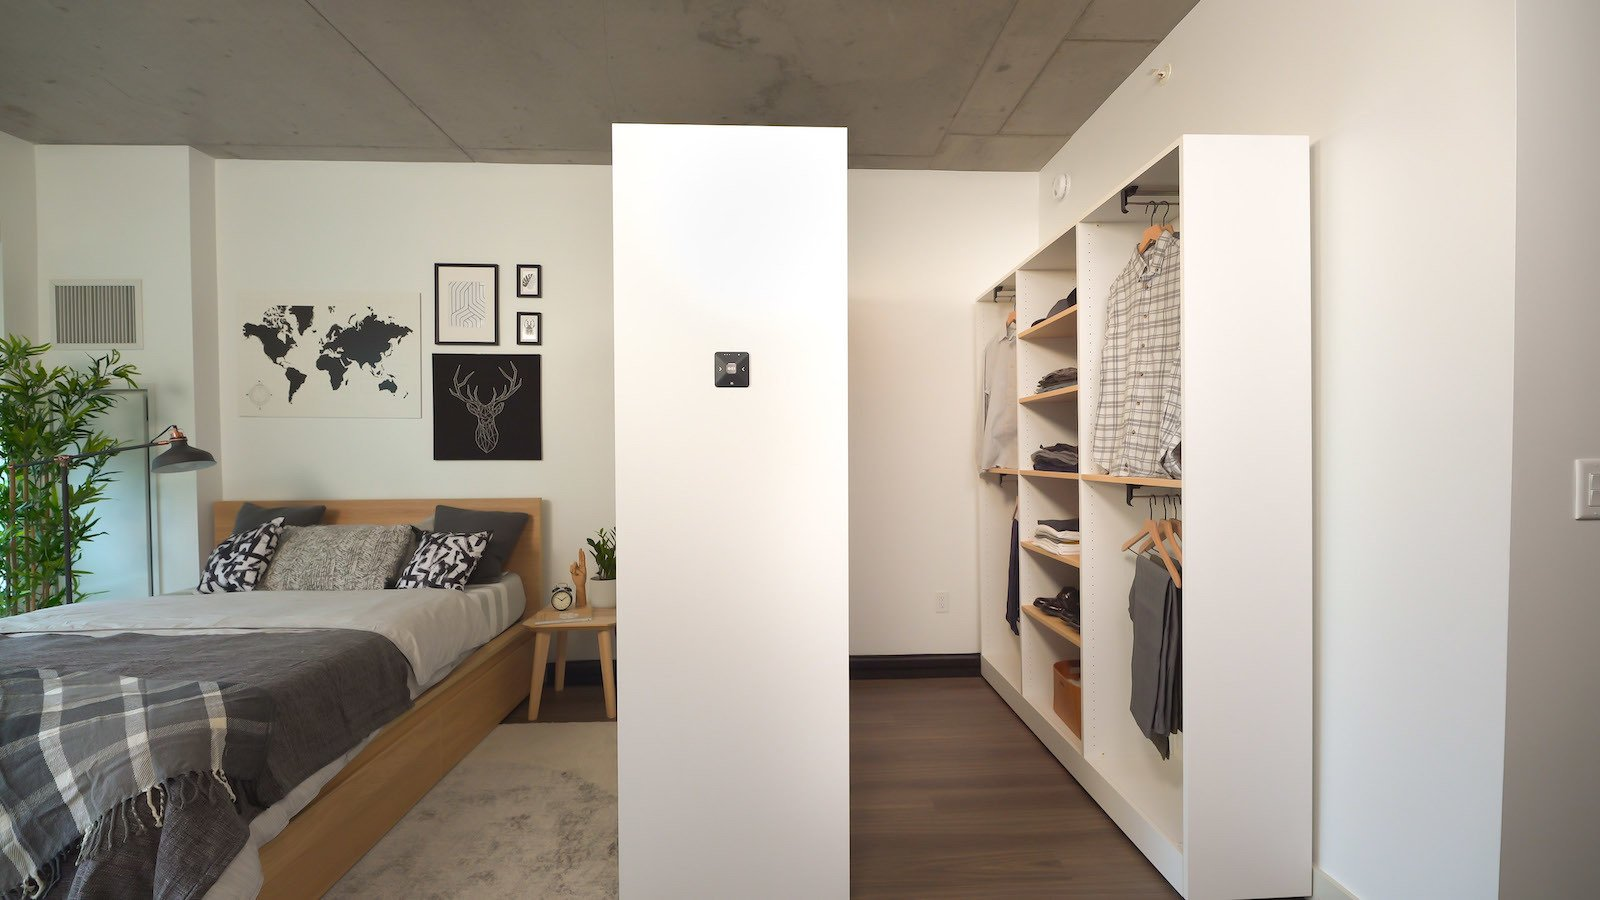 oris-pocket-closet-is-installed-on-a-robotic-rail-it-opens-and-closes-using-a-built-in-controller-a-smartphone-or-voice-control.jpg